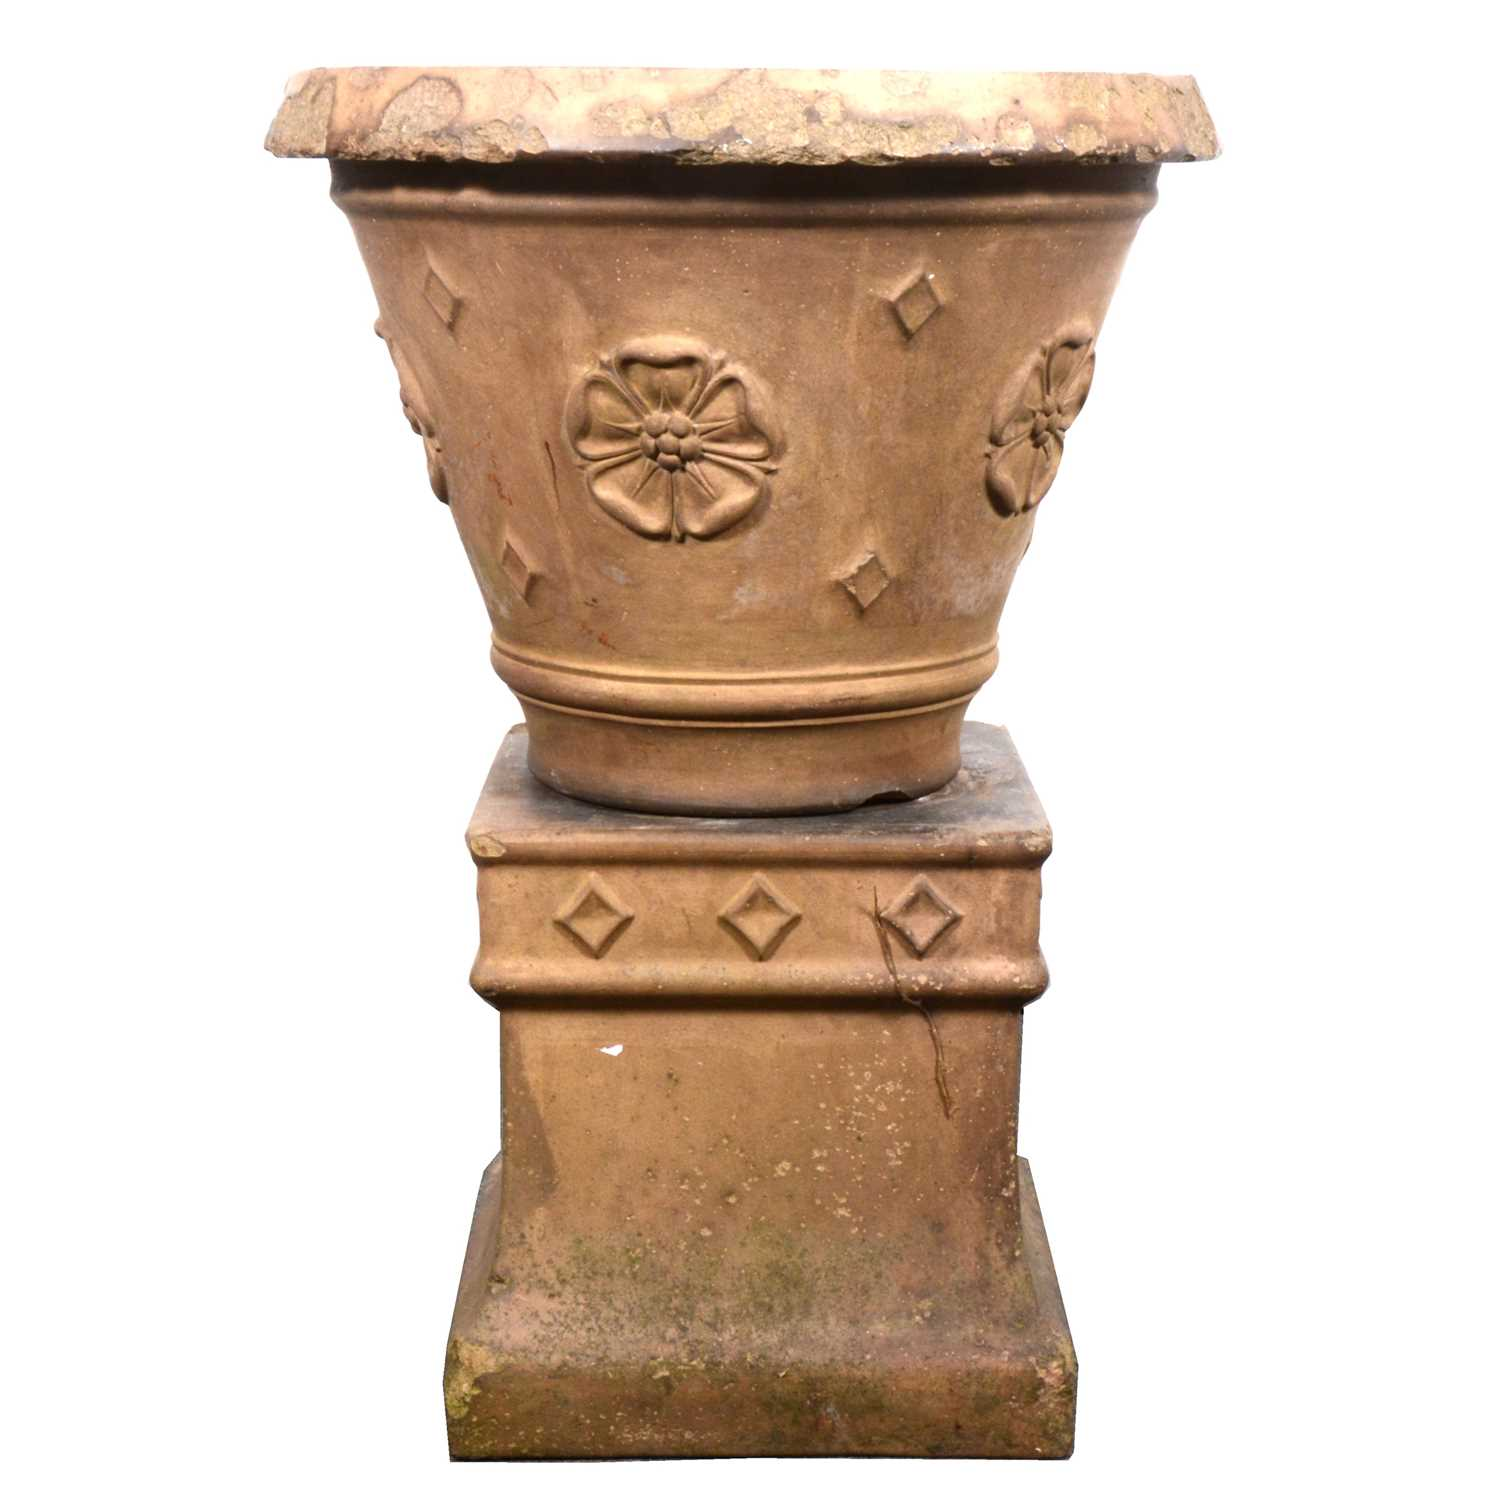 Lot 521-A terracotta garden planter on plinth by Doulton Lambeth